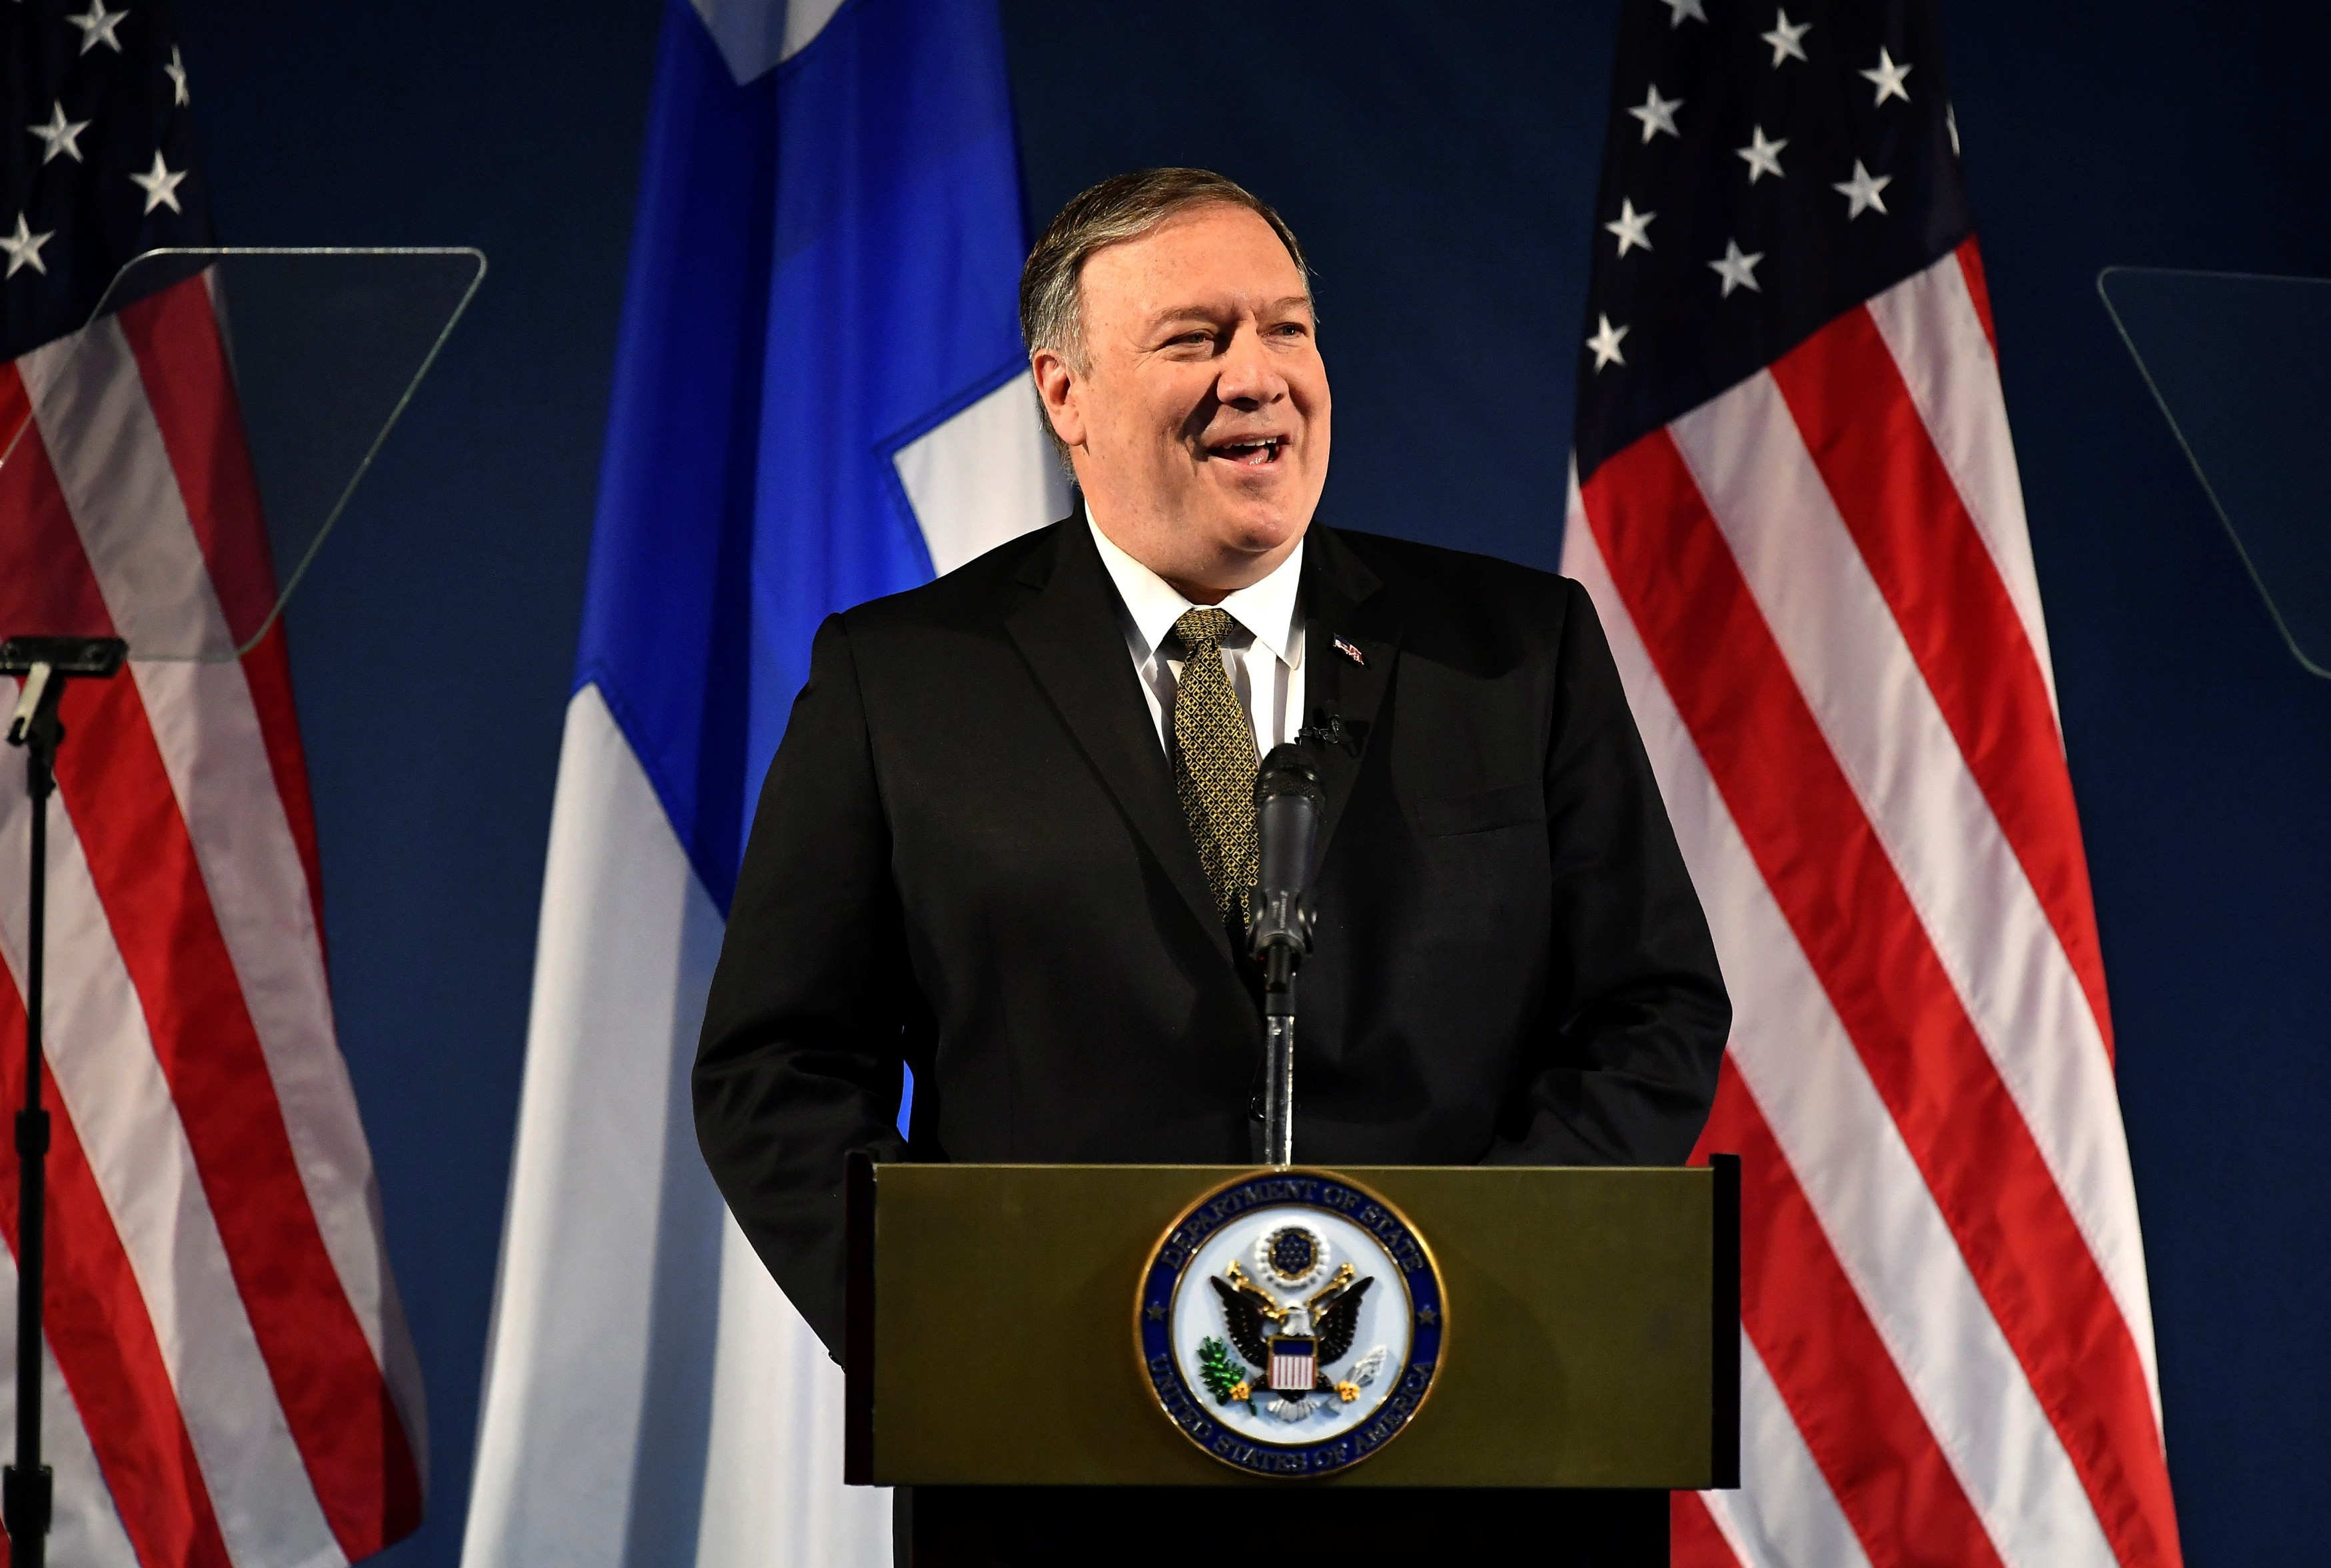 U.S. Secretary of State Mike Pompeo speaks on Arctic policy at the Lappi Areena in Rovaniemi